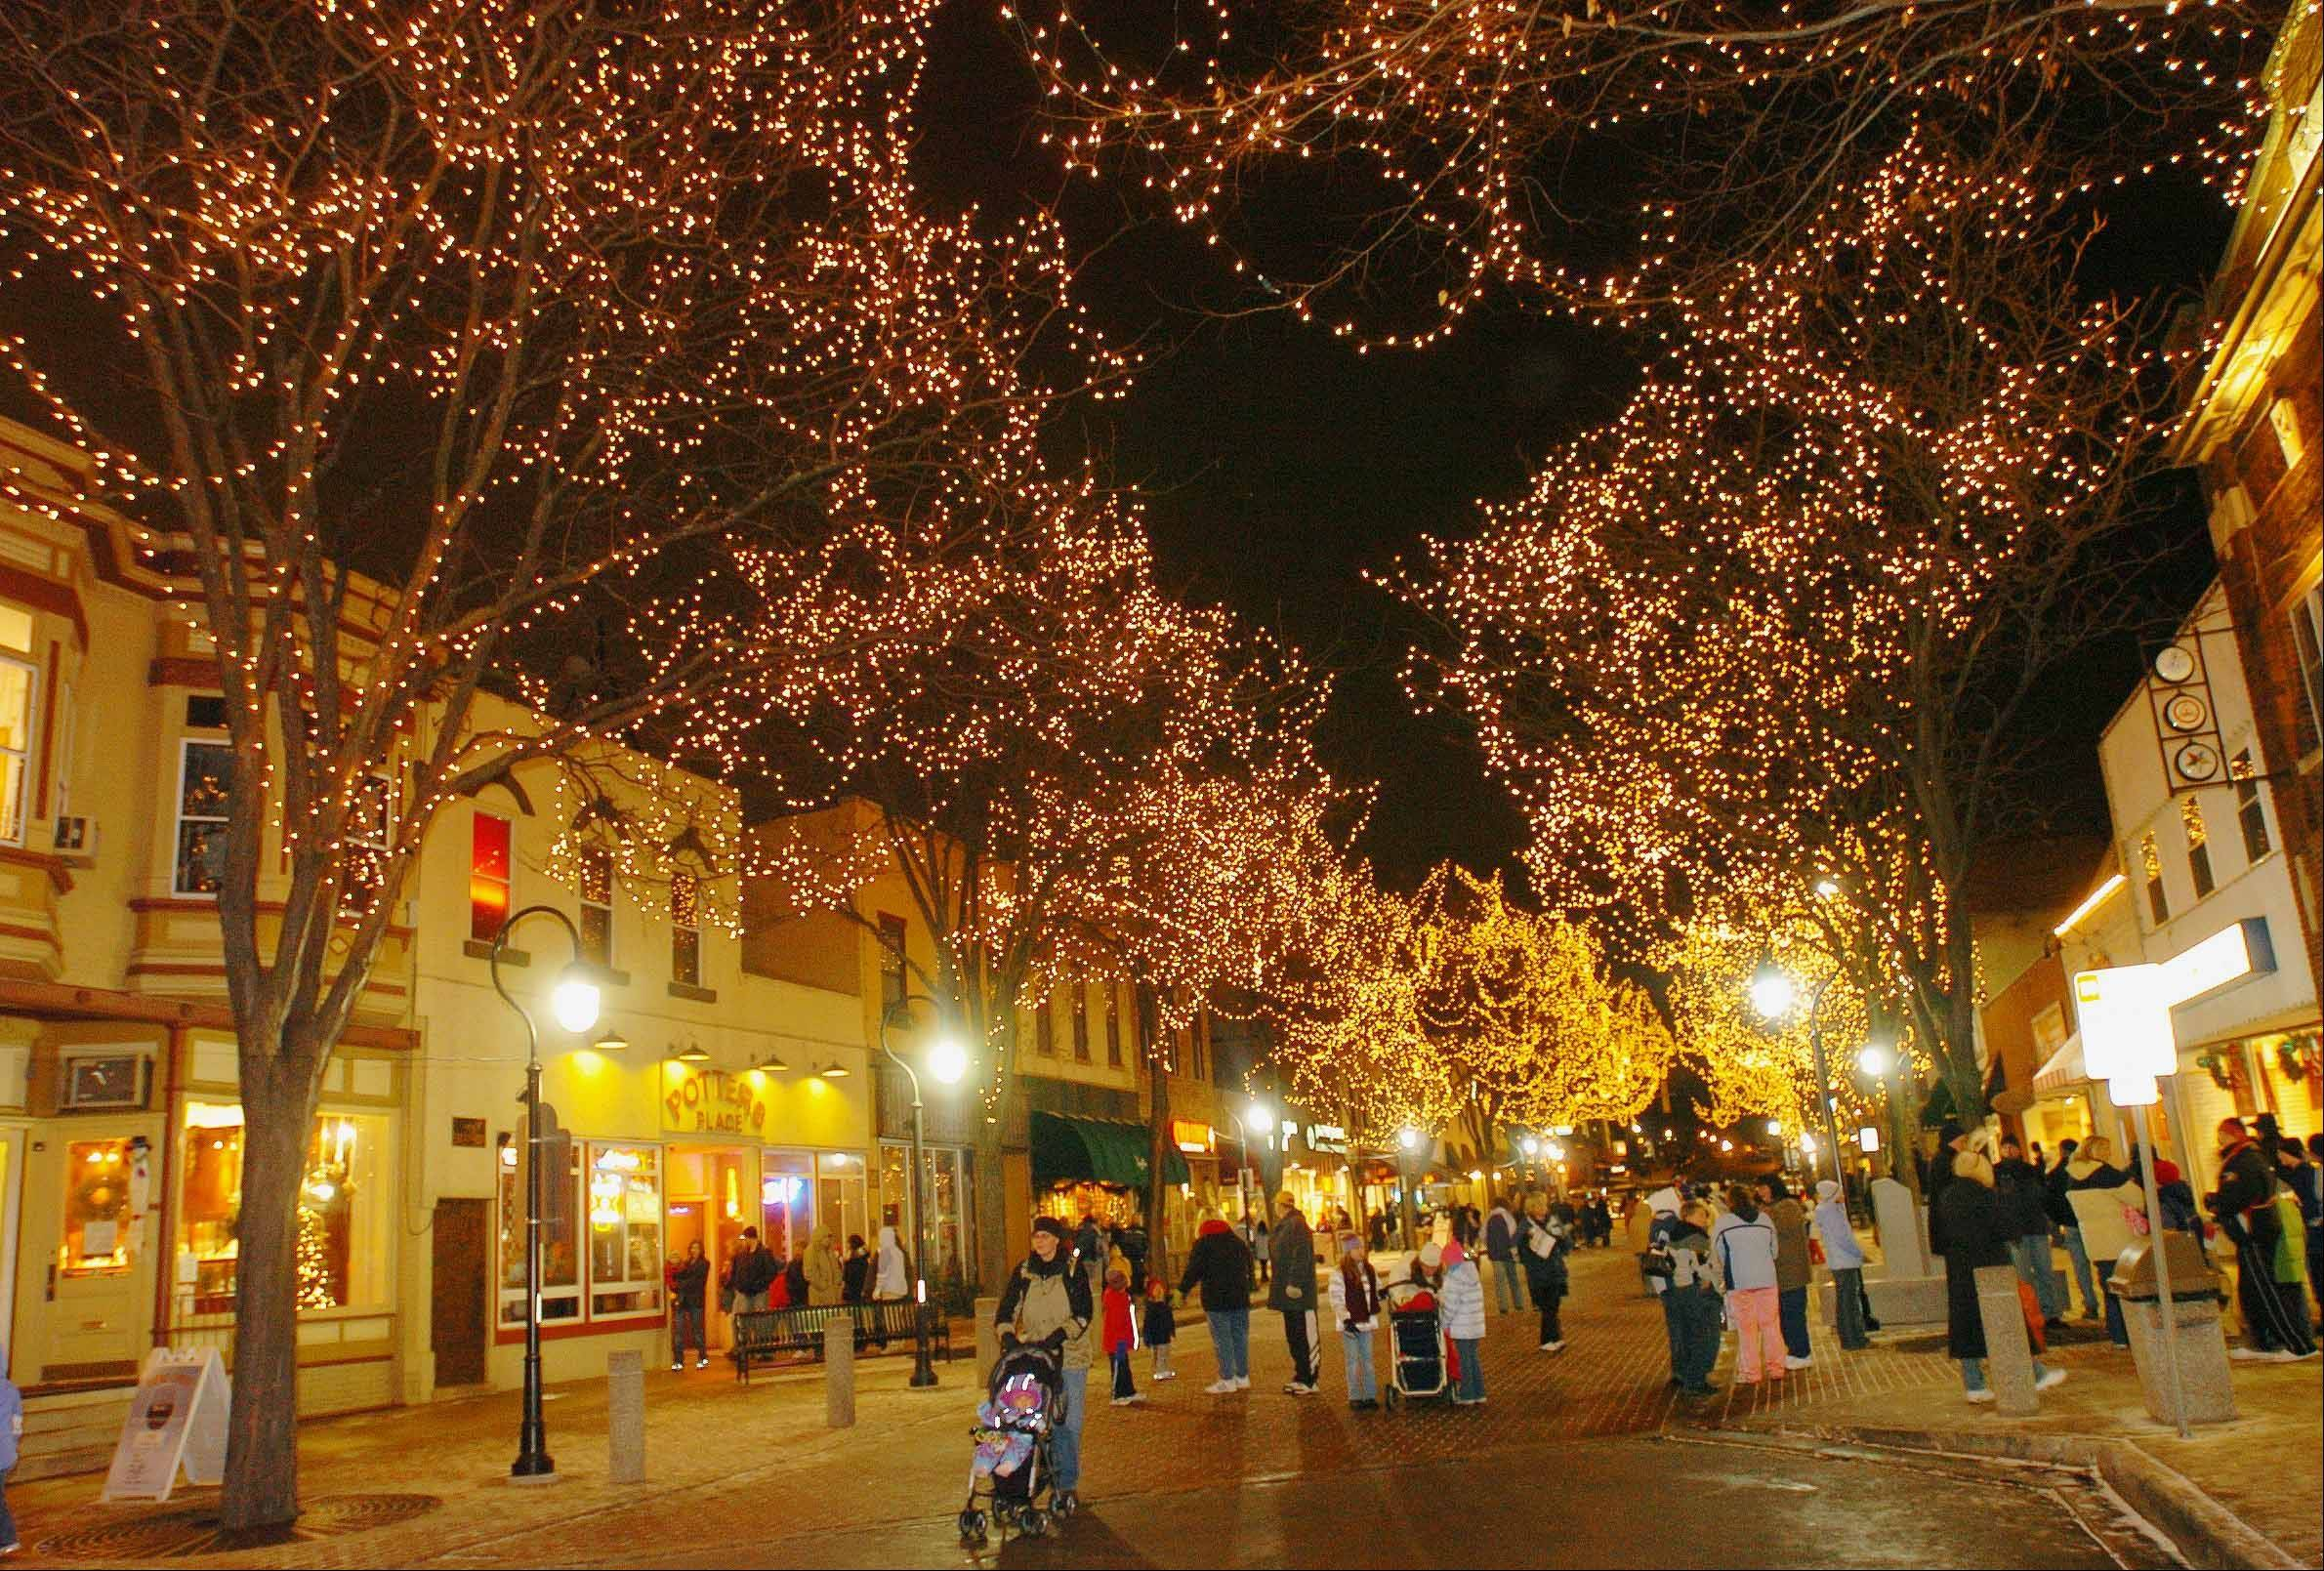 Downtown Naperville lighting up early for marathon, holidays